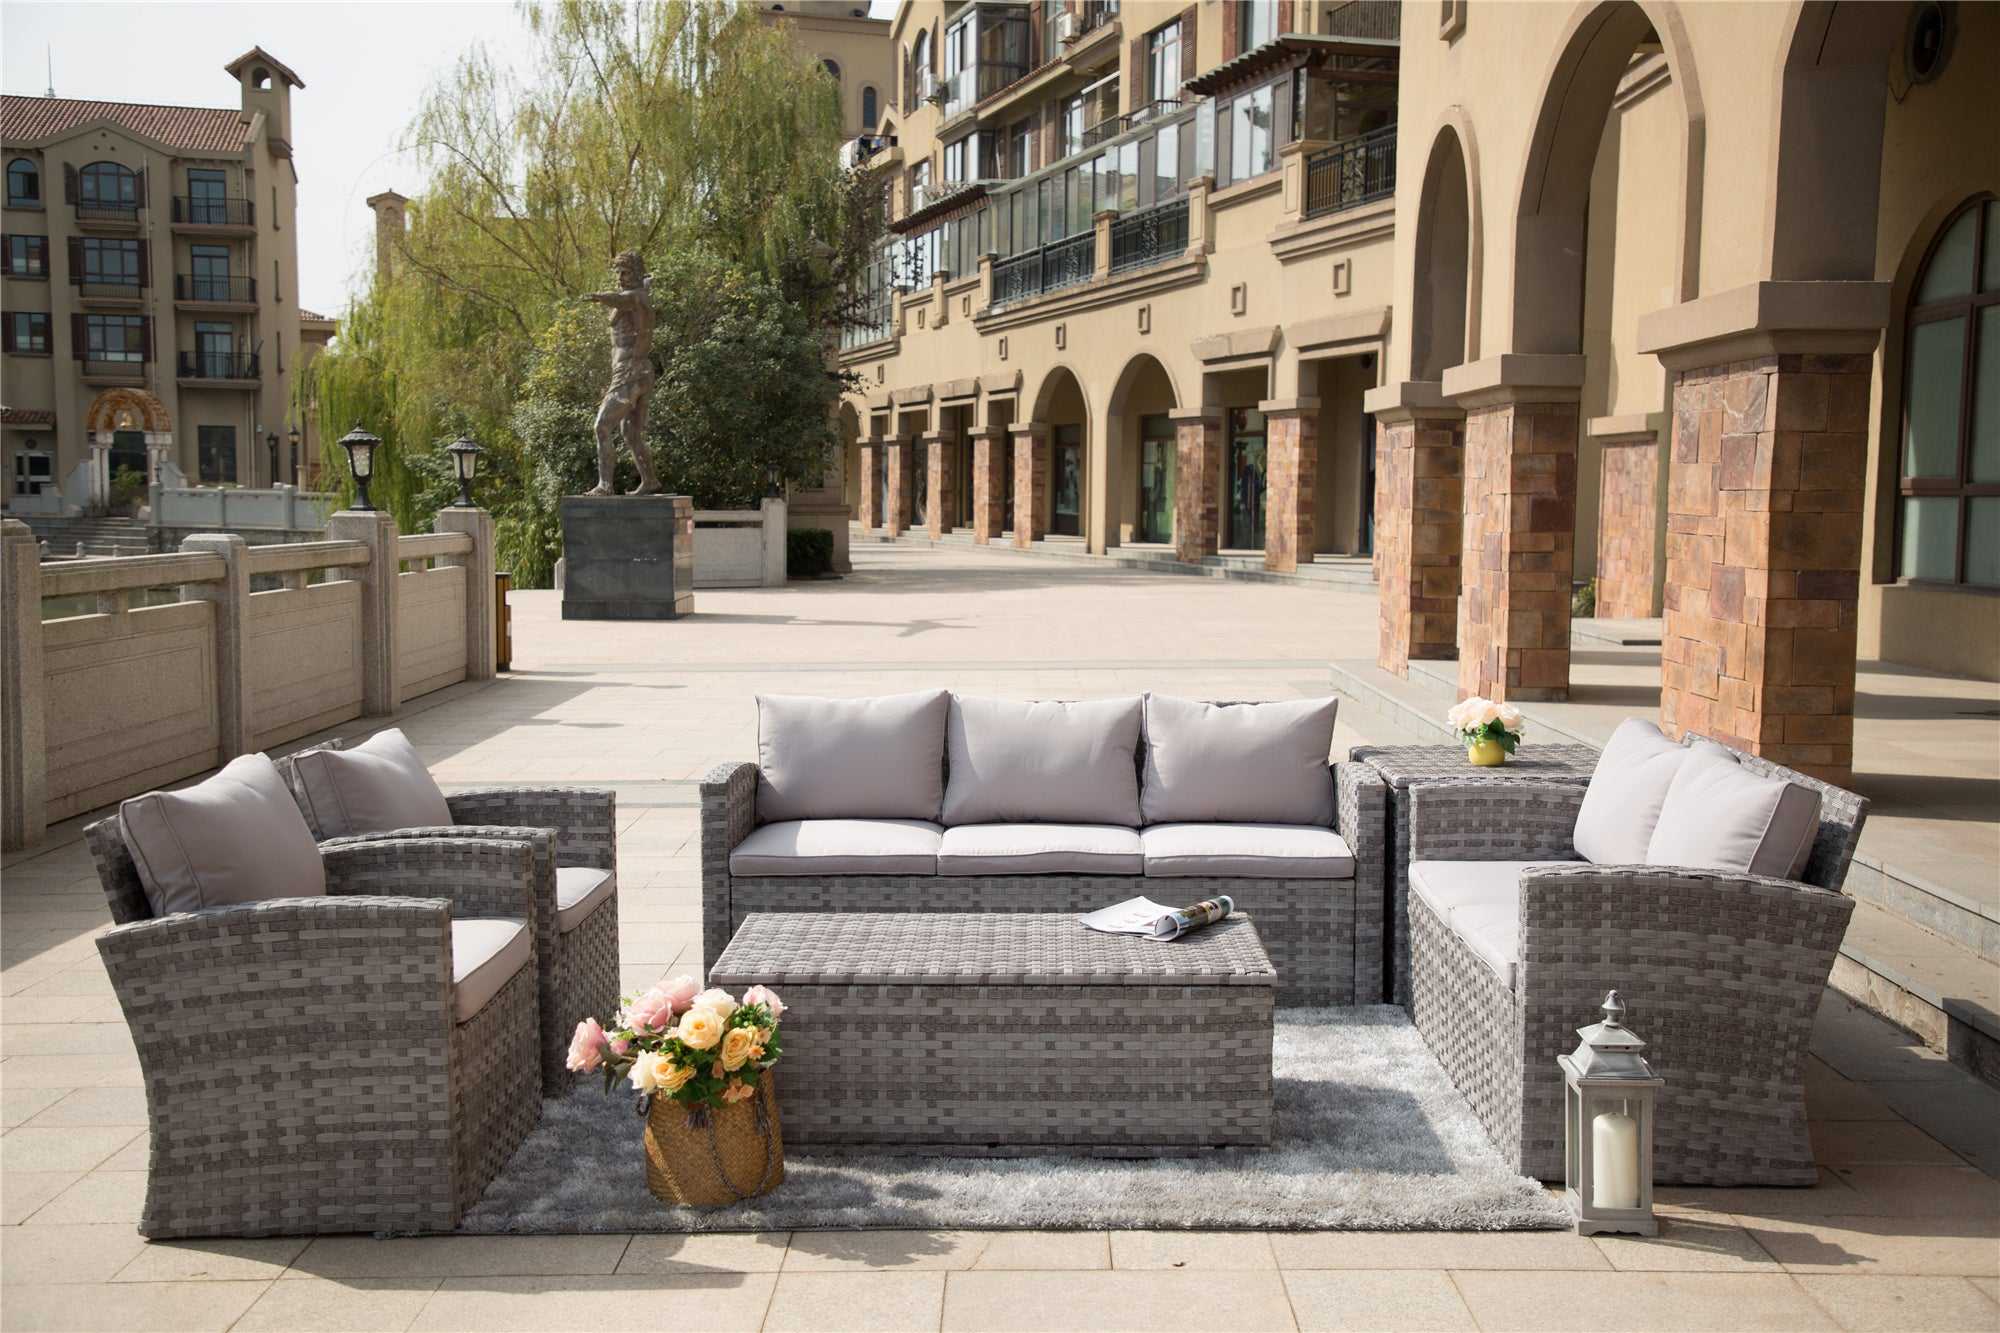 Probasco outdoor sofa sectional with deep seating. Currently on our pre-order special with free delivery and assembly.